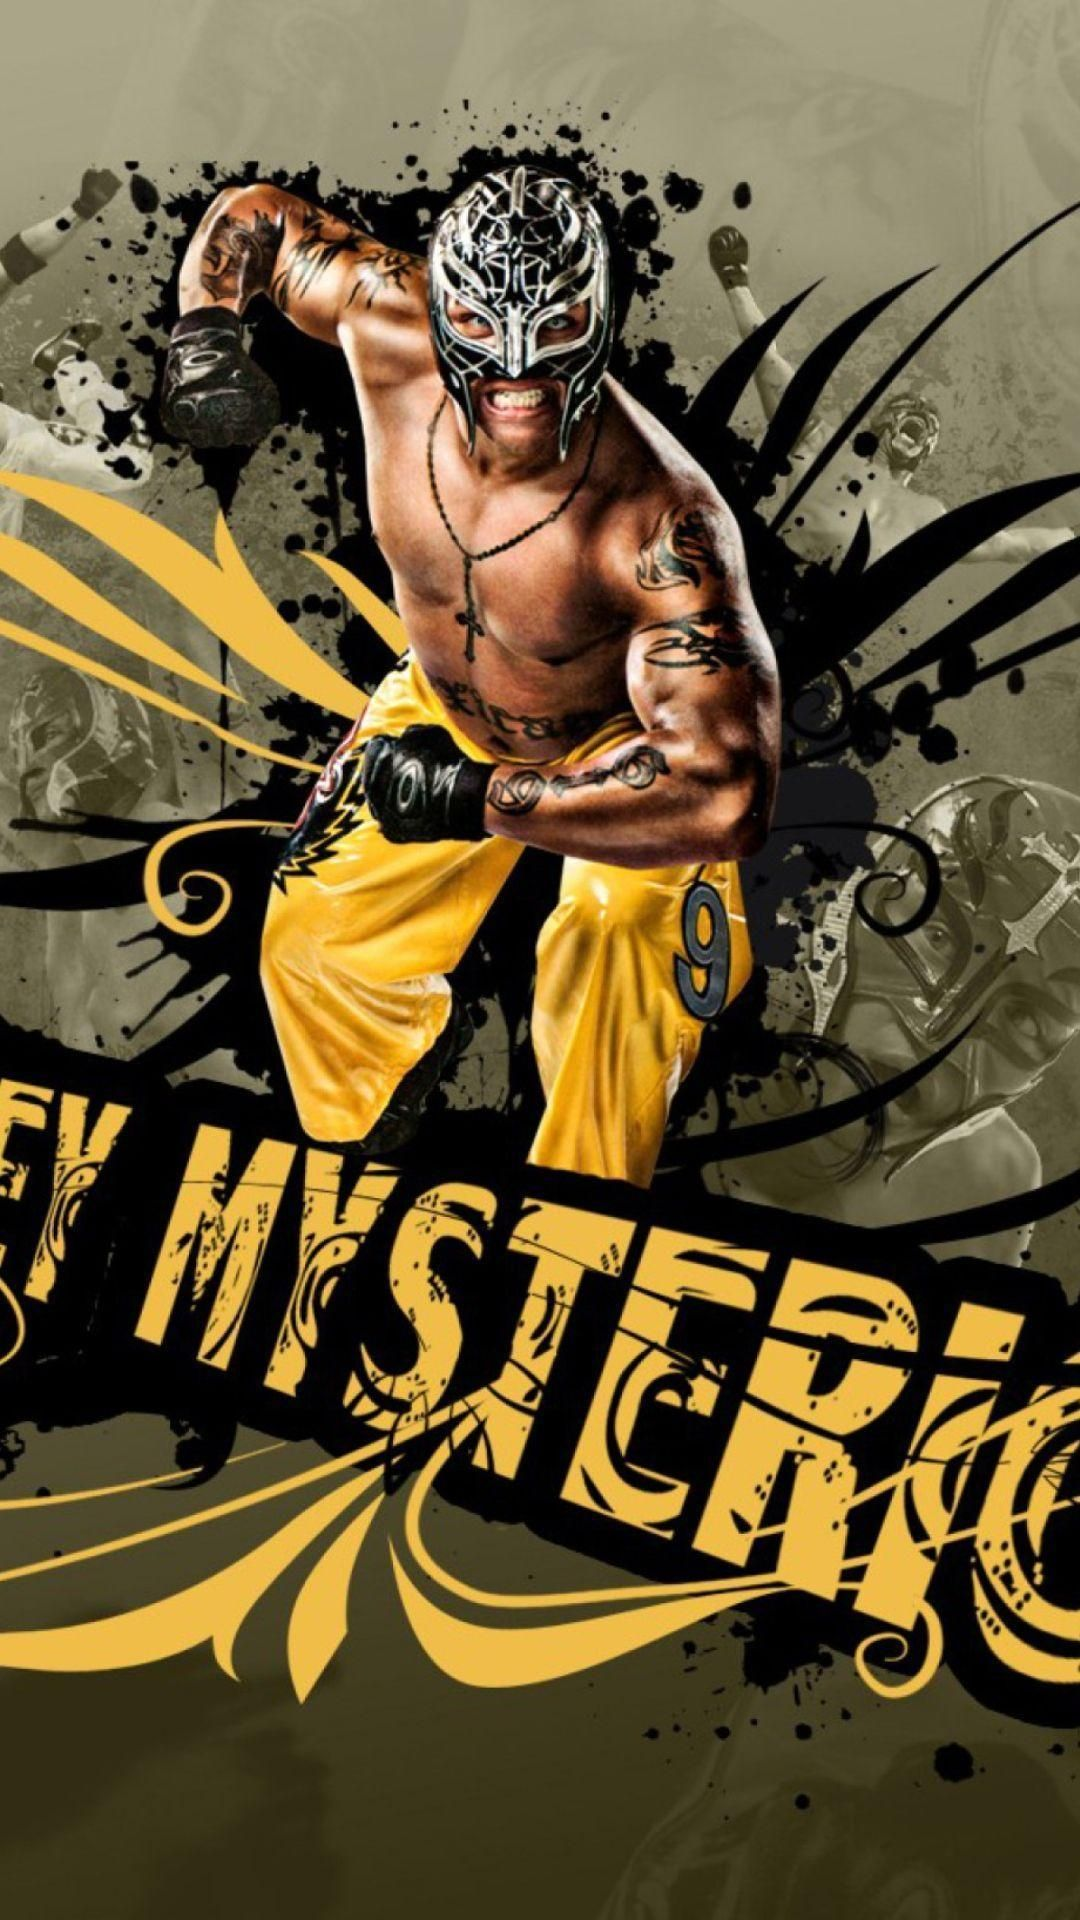 Rey Mysterio Wallpaper for iPhone Wwe wallpapers, Wwe